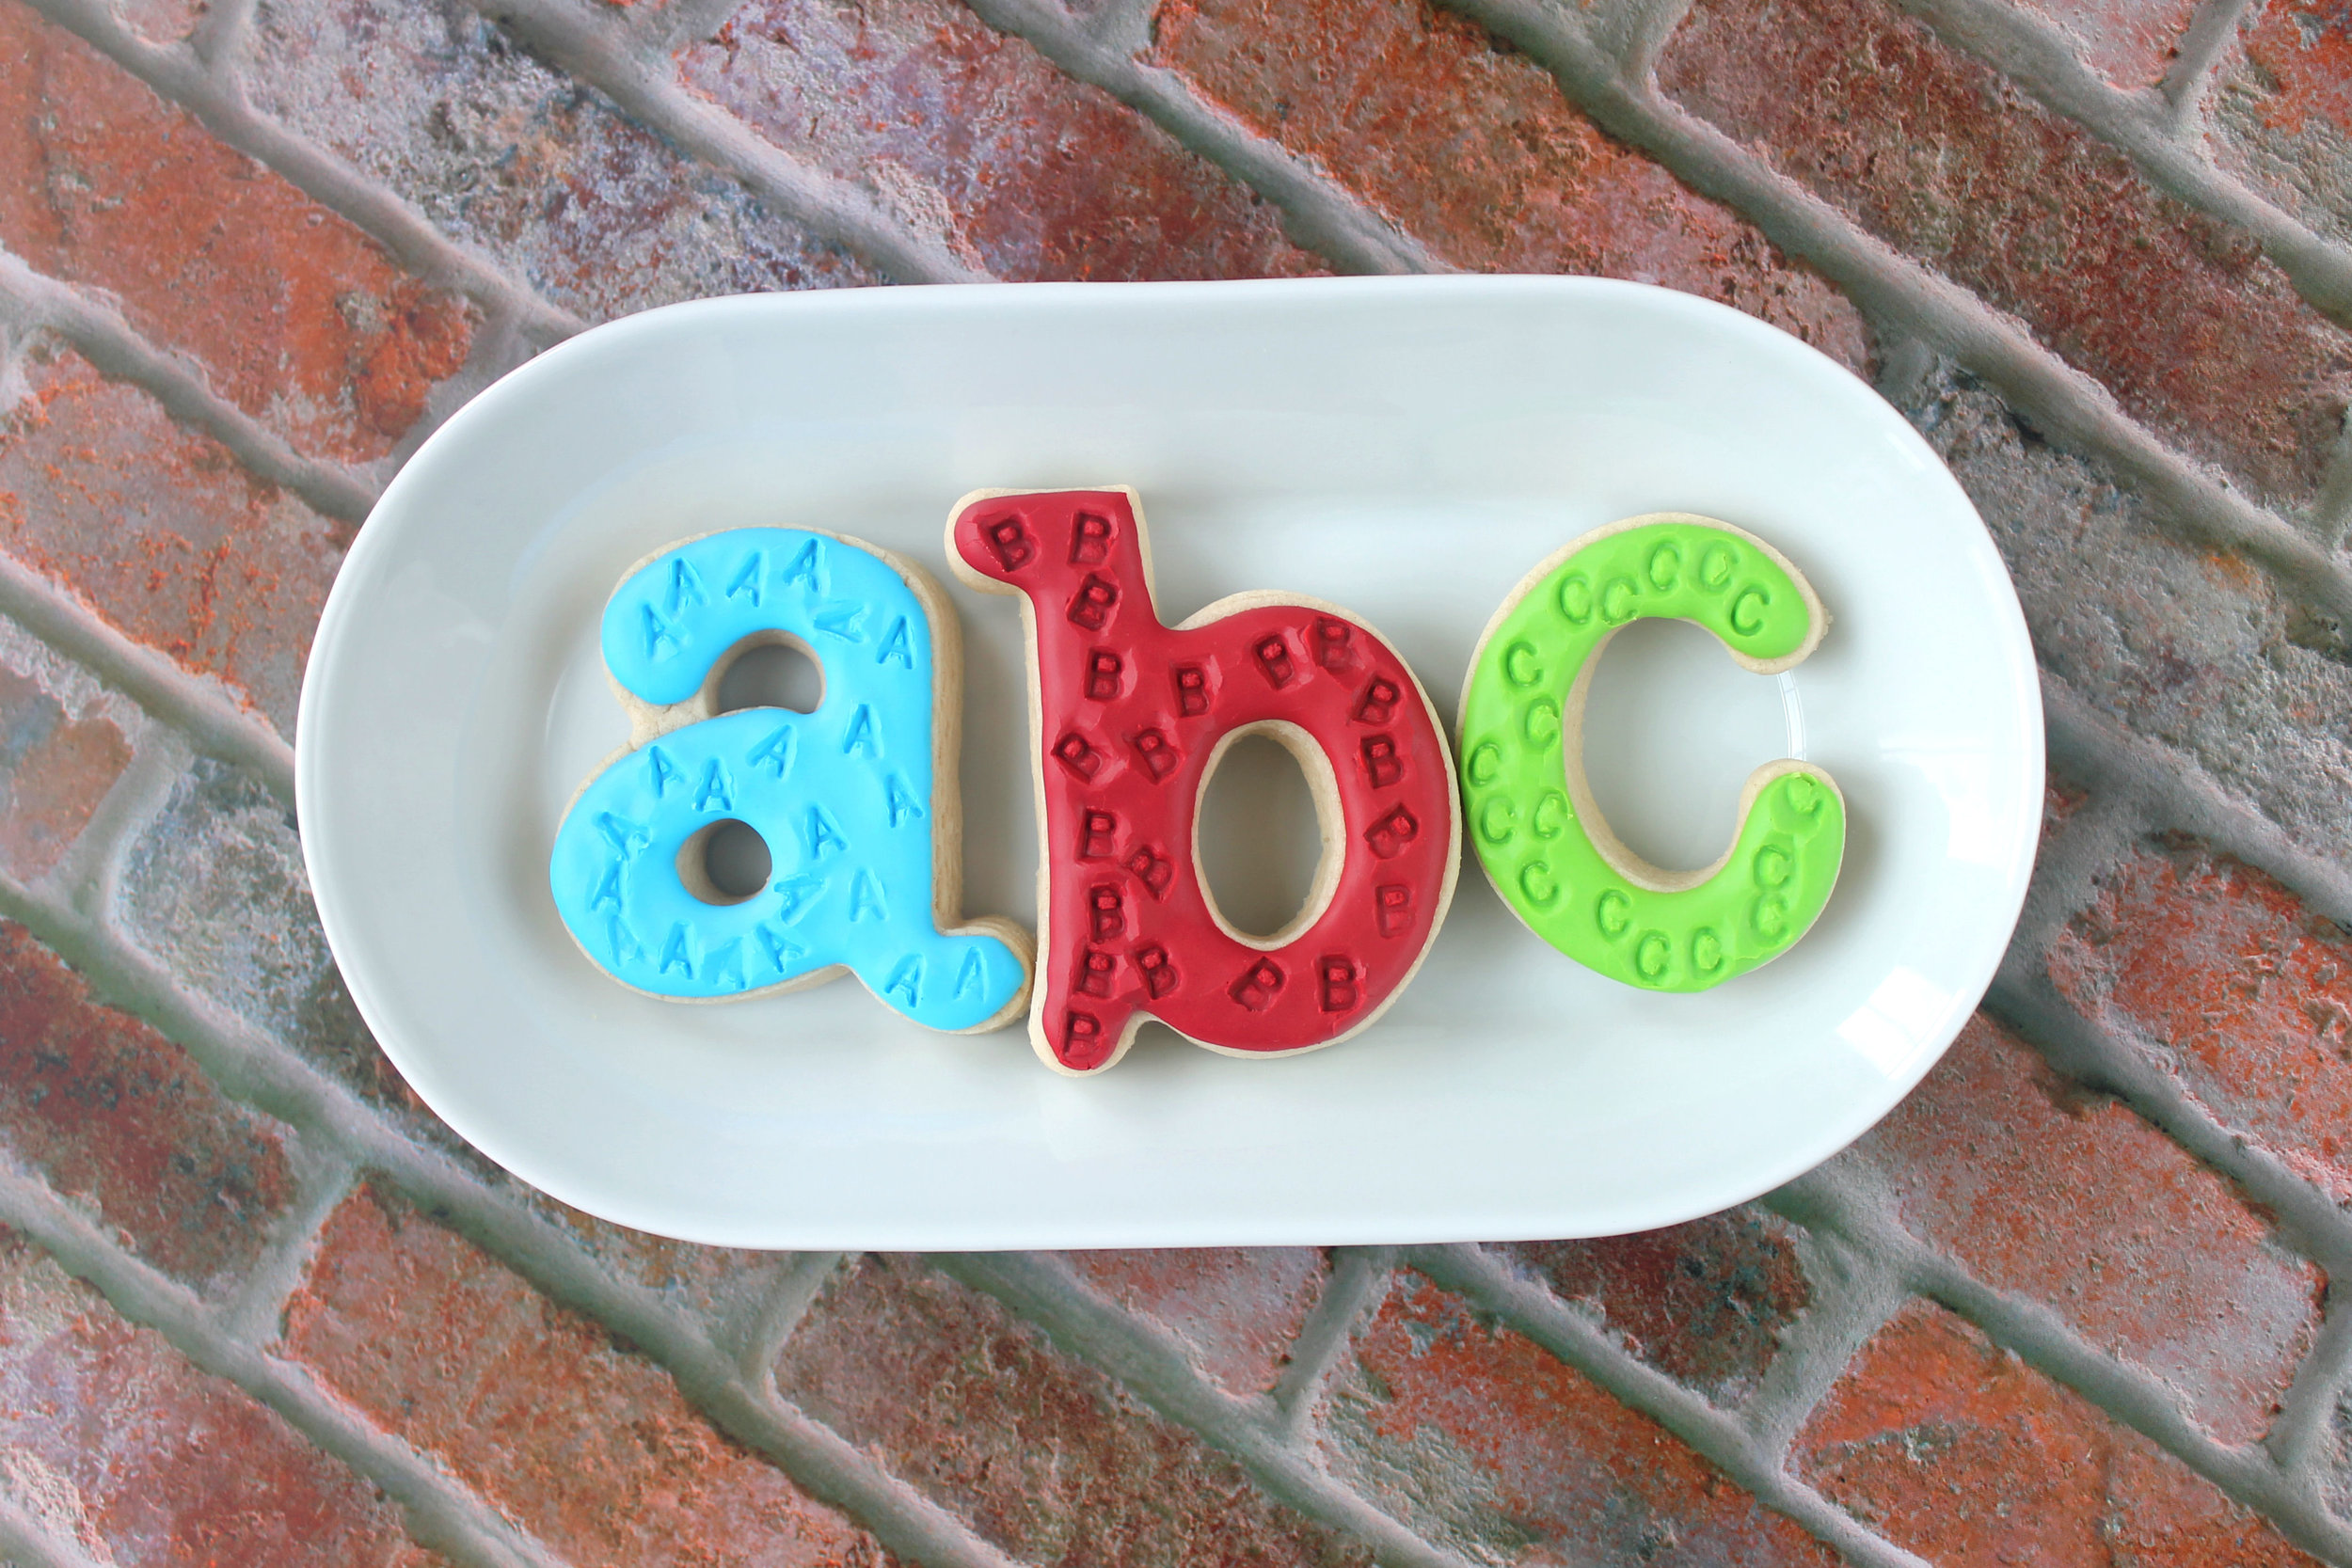 ABC Decorated Sugar Cookies YouTube Video